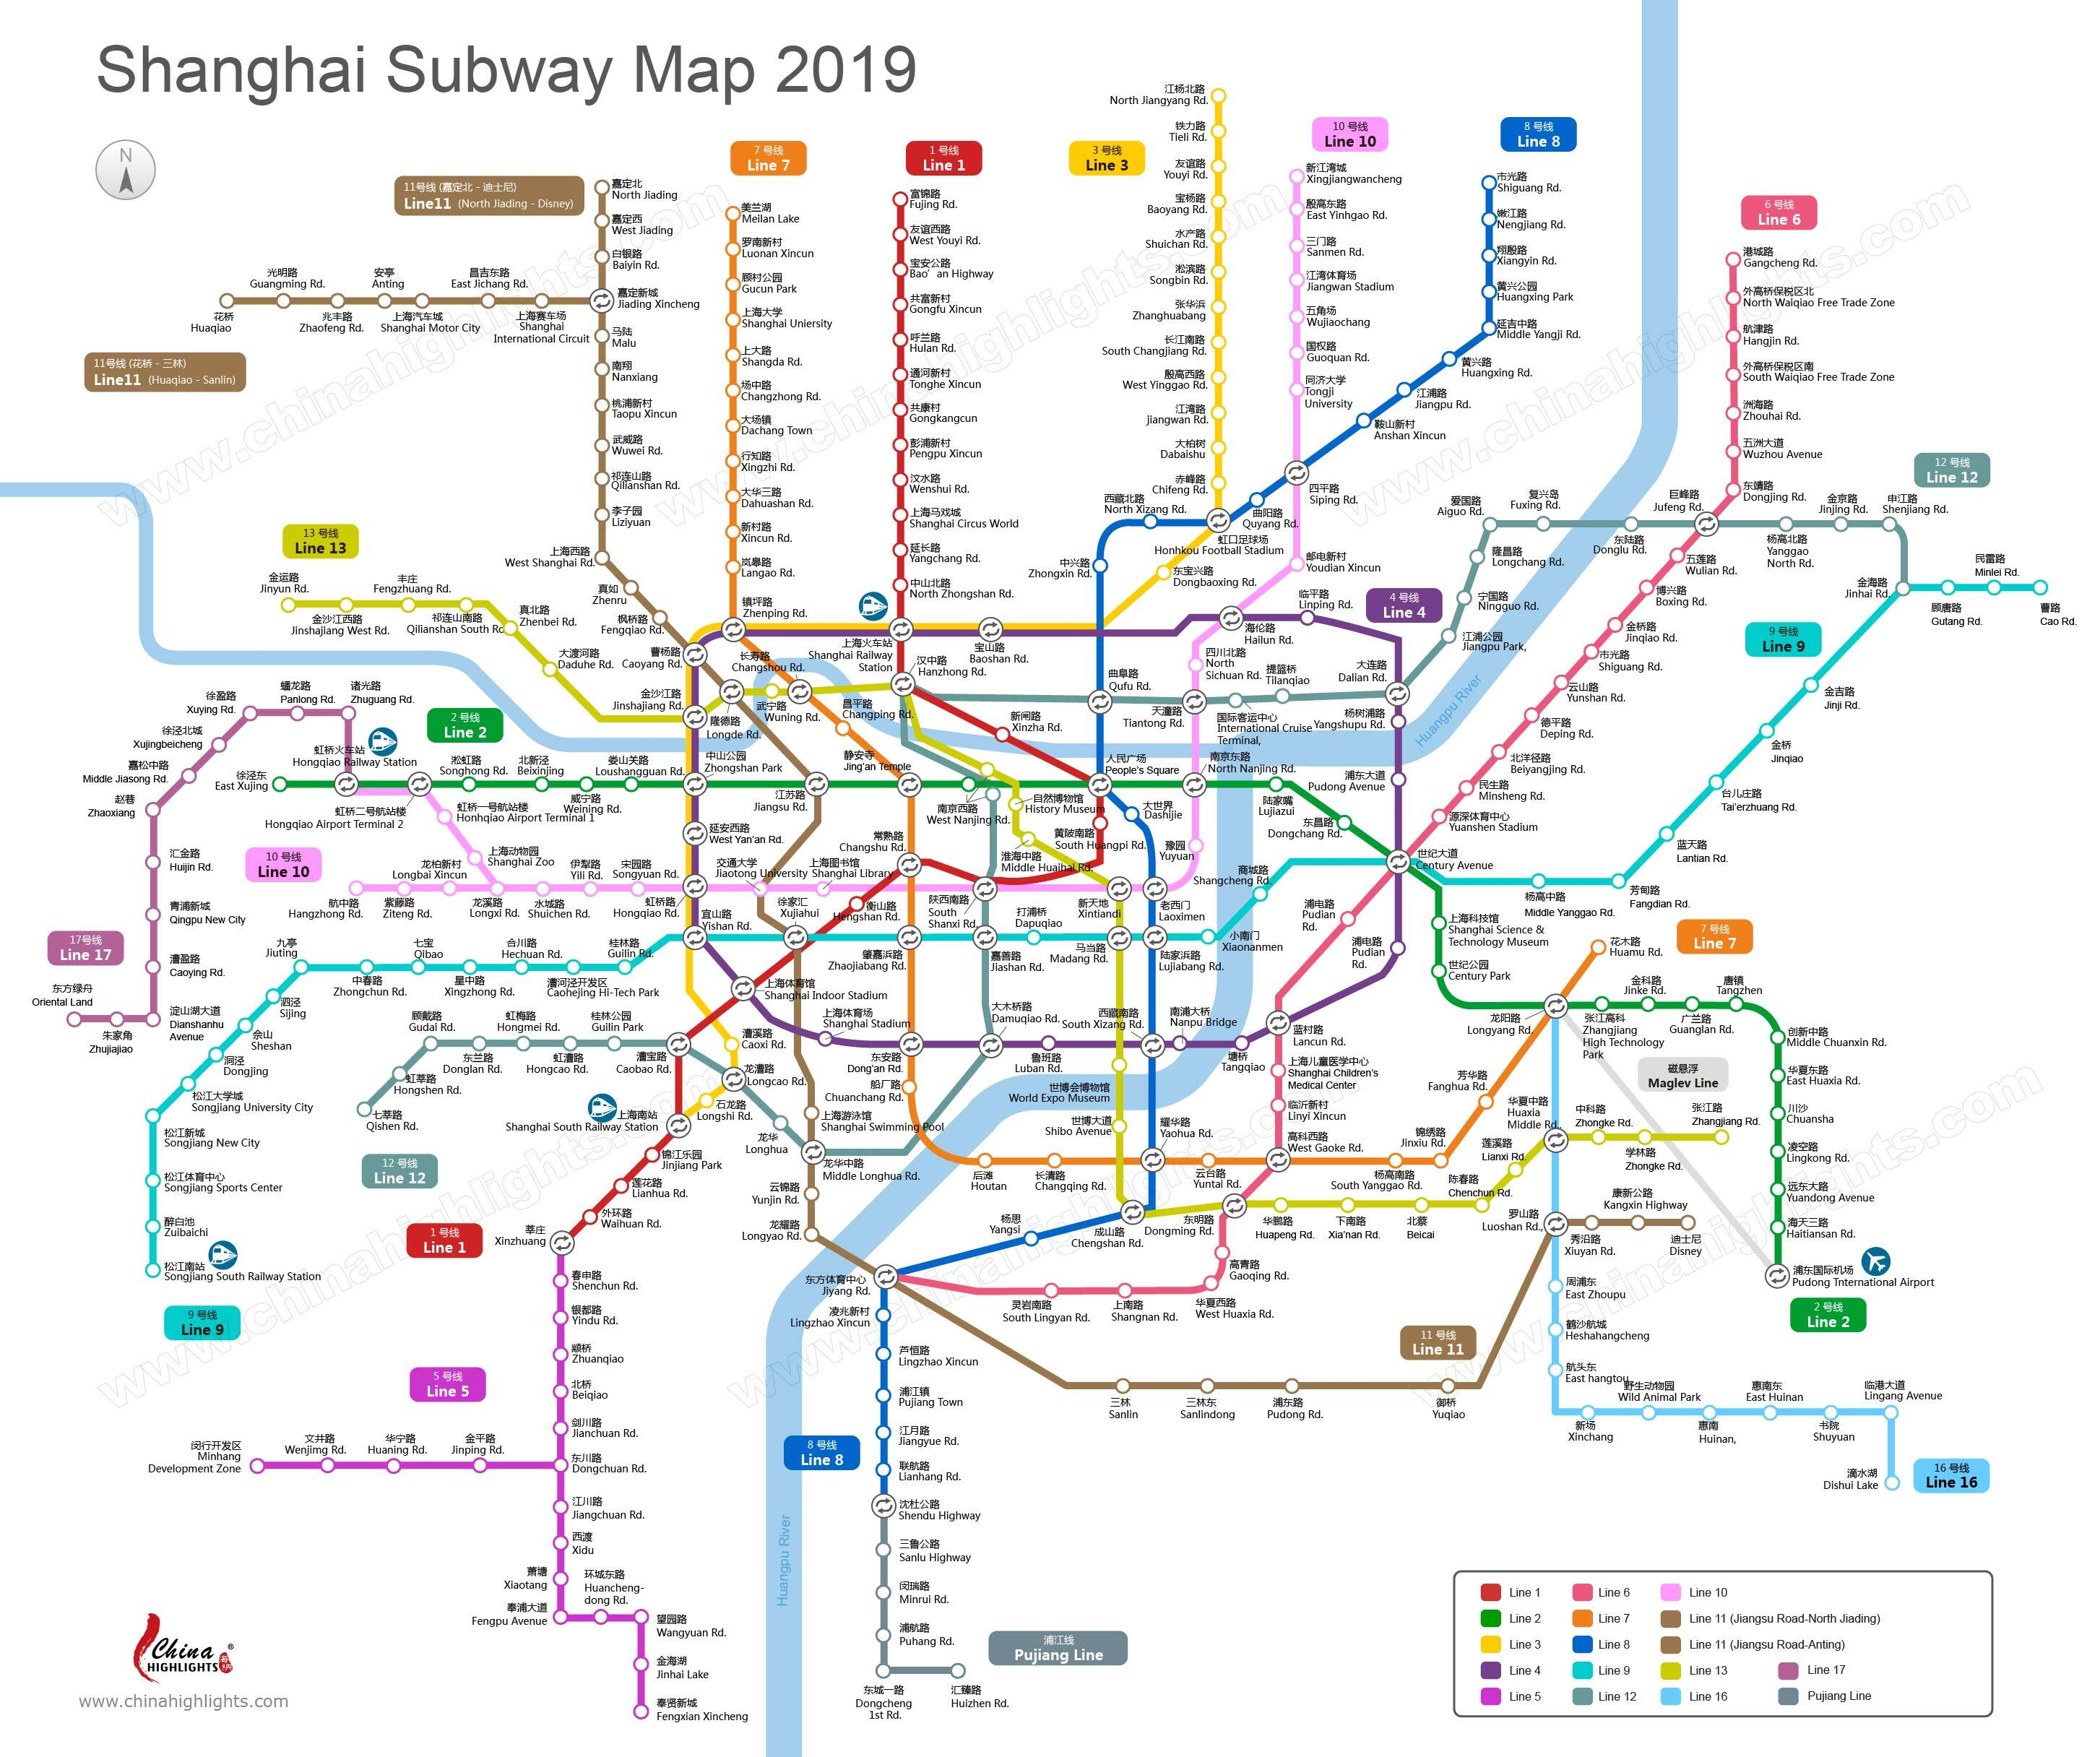 Subway Map Of Park Slope.Shanghai Subway Shanghai Metro Map Updated 2019